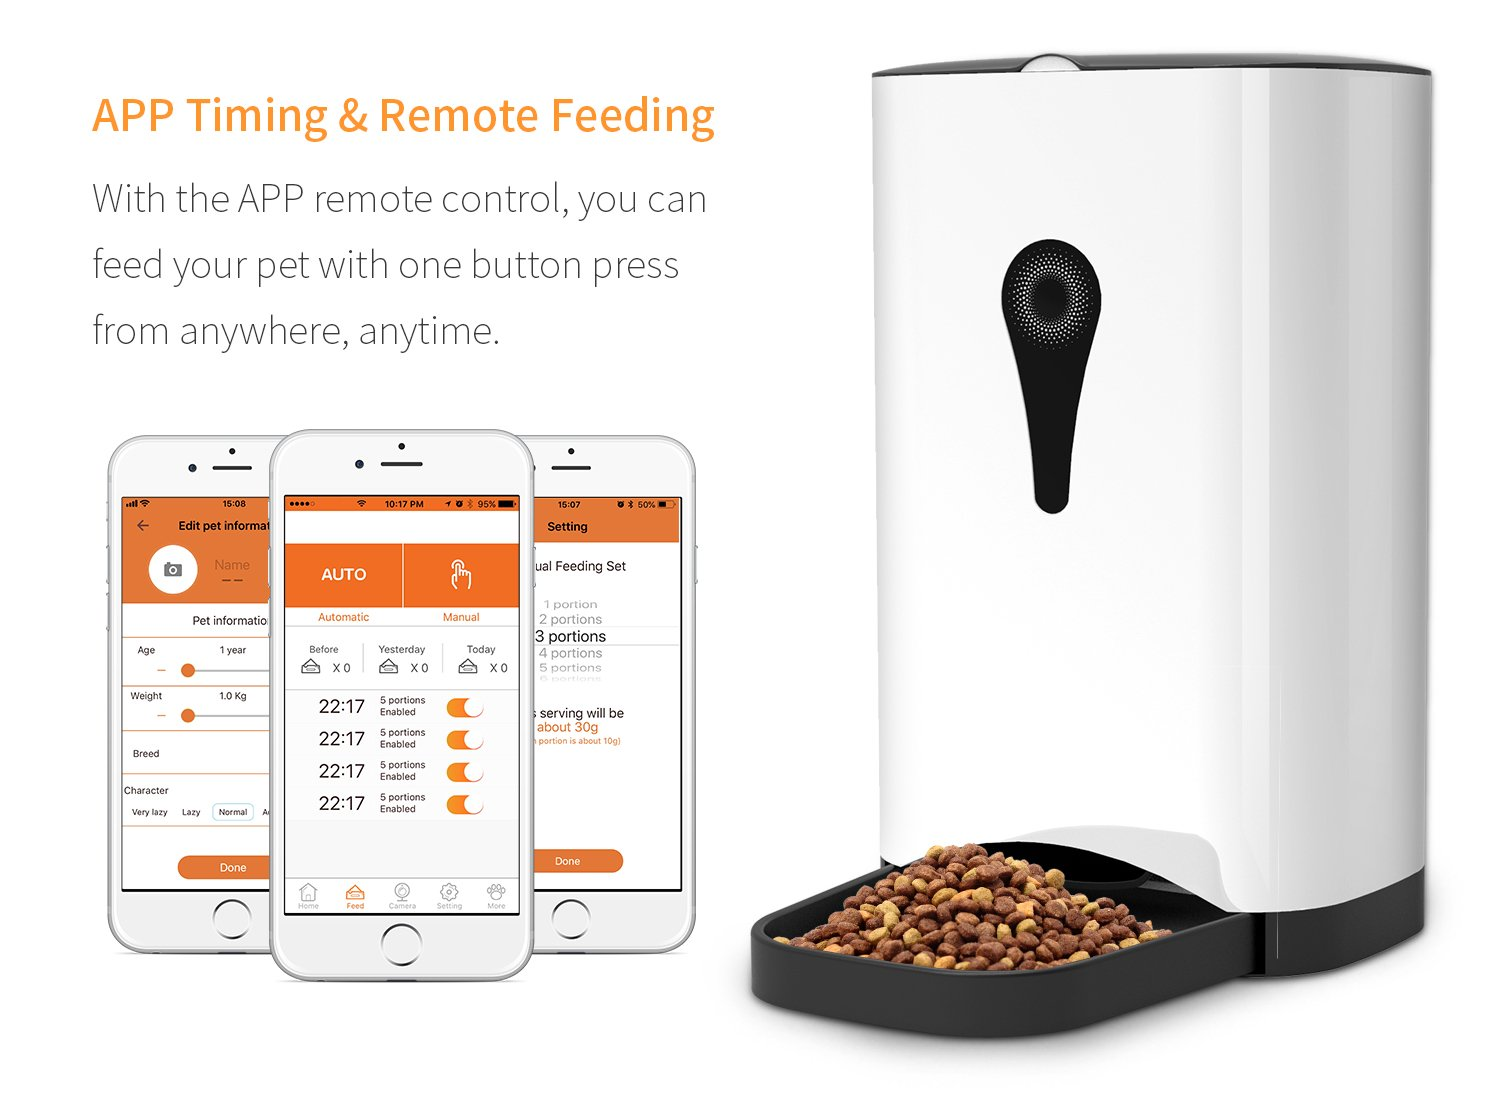 Smart Automatic Cat Feeder - SUKI&SAMI Pet Food Dispenser, with Timer Programmable, Voice Recording, WI-FI Enabled APP control Up to 8 Meals a Day by SUKI&SAMI (Image #2)